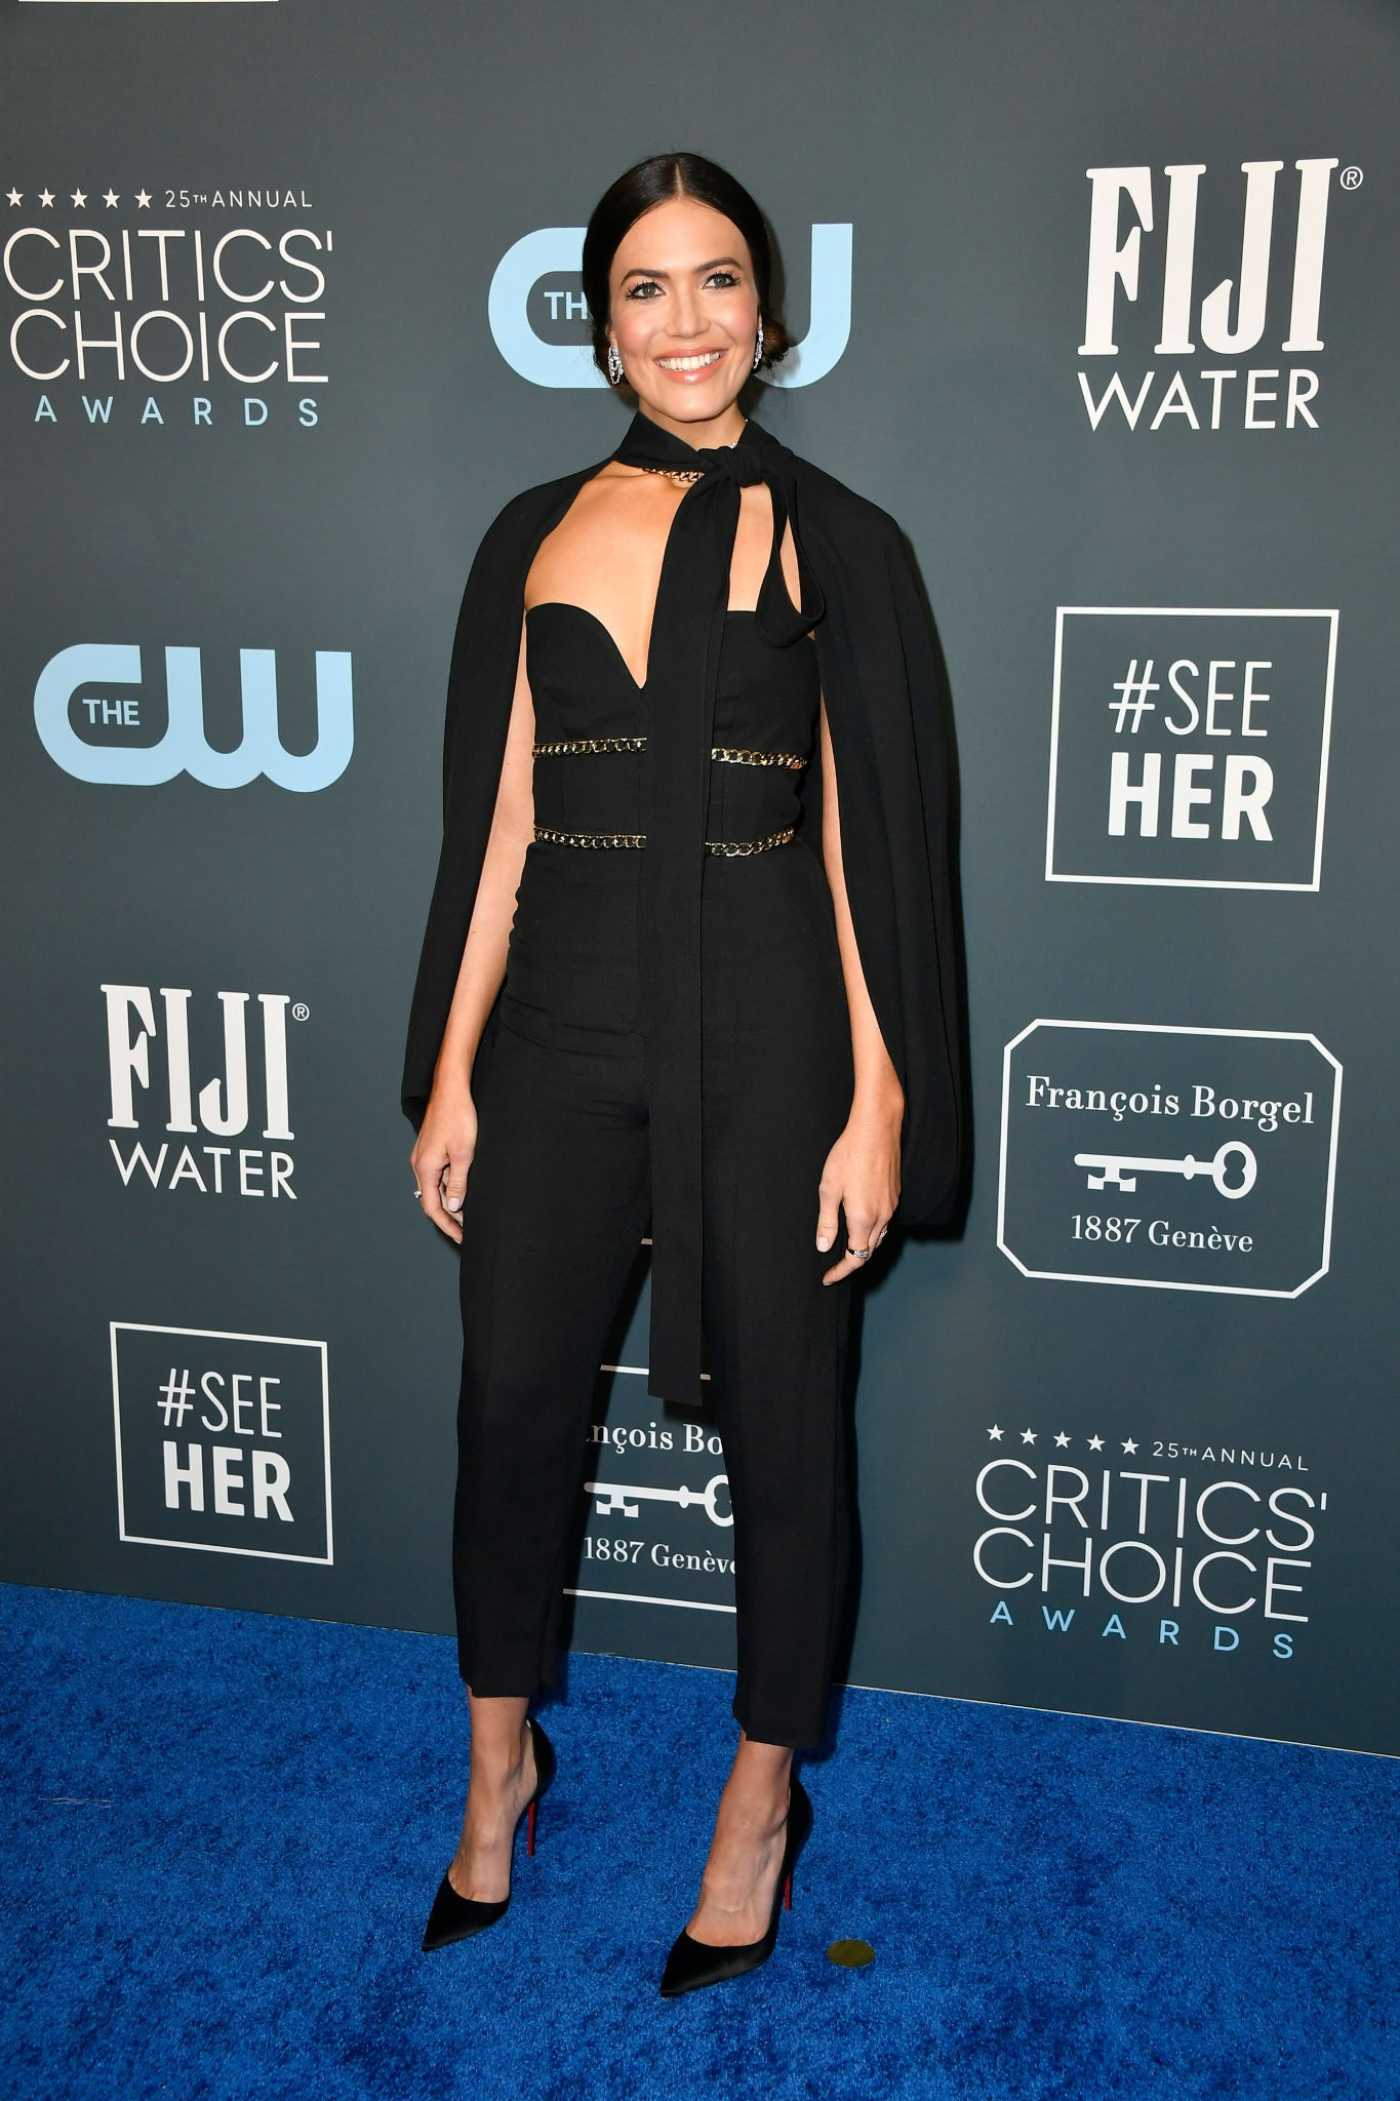 Mandy Moore Attends the 25th Annual Critics Choice Awards in Santa Monica 01/12/2020